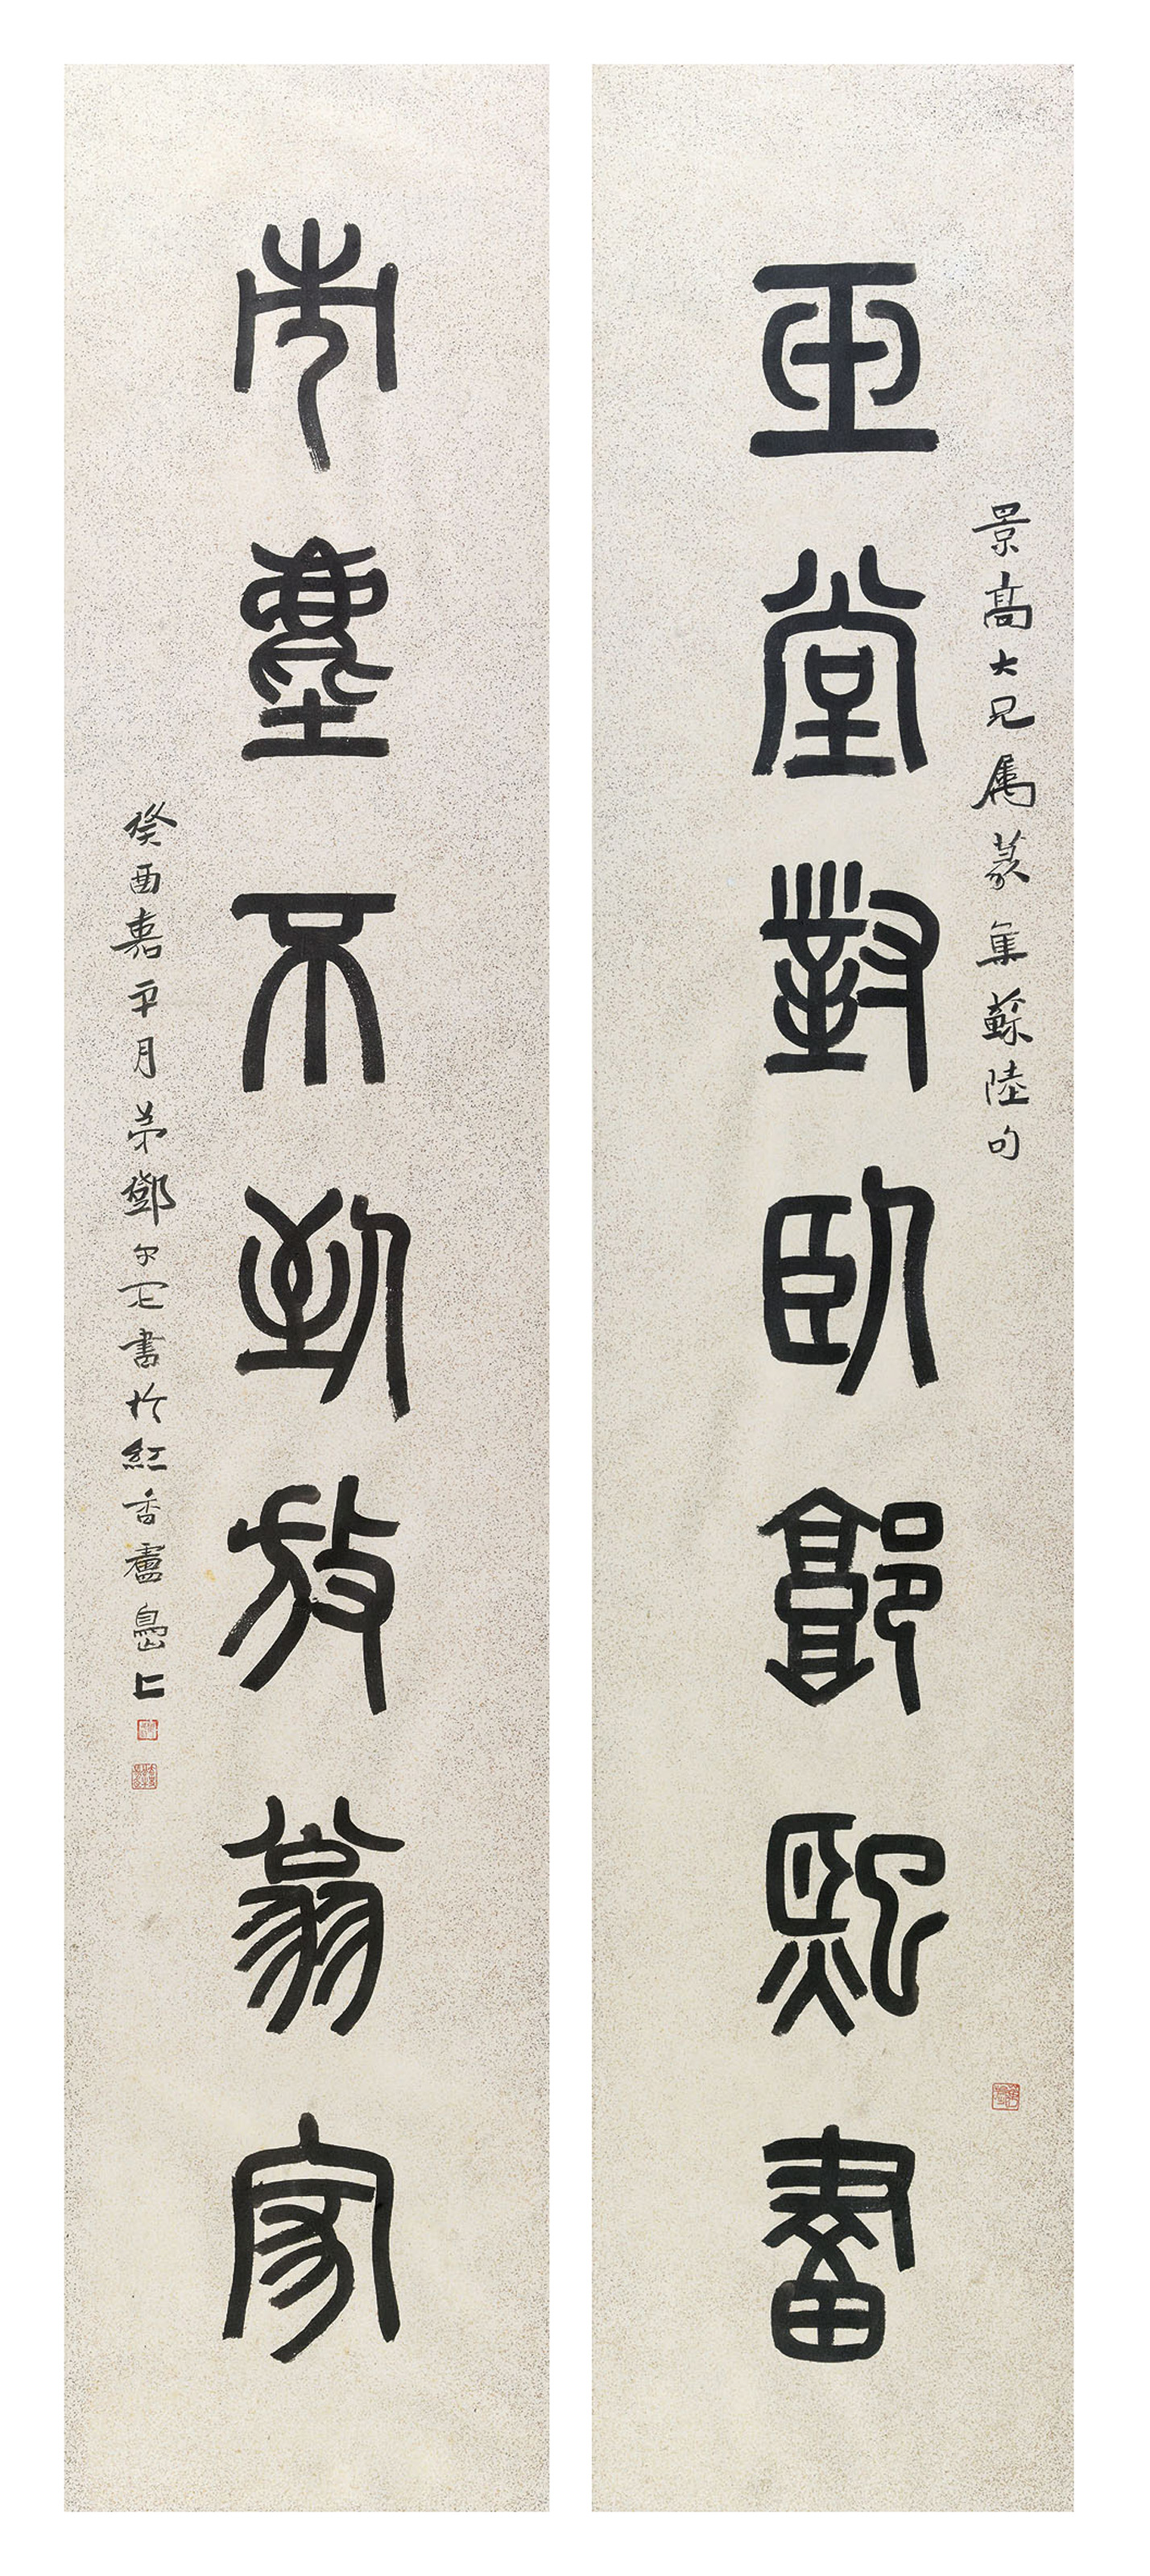 Calligraphic Couplet in Seal Script